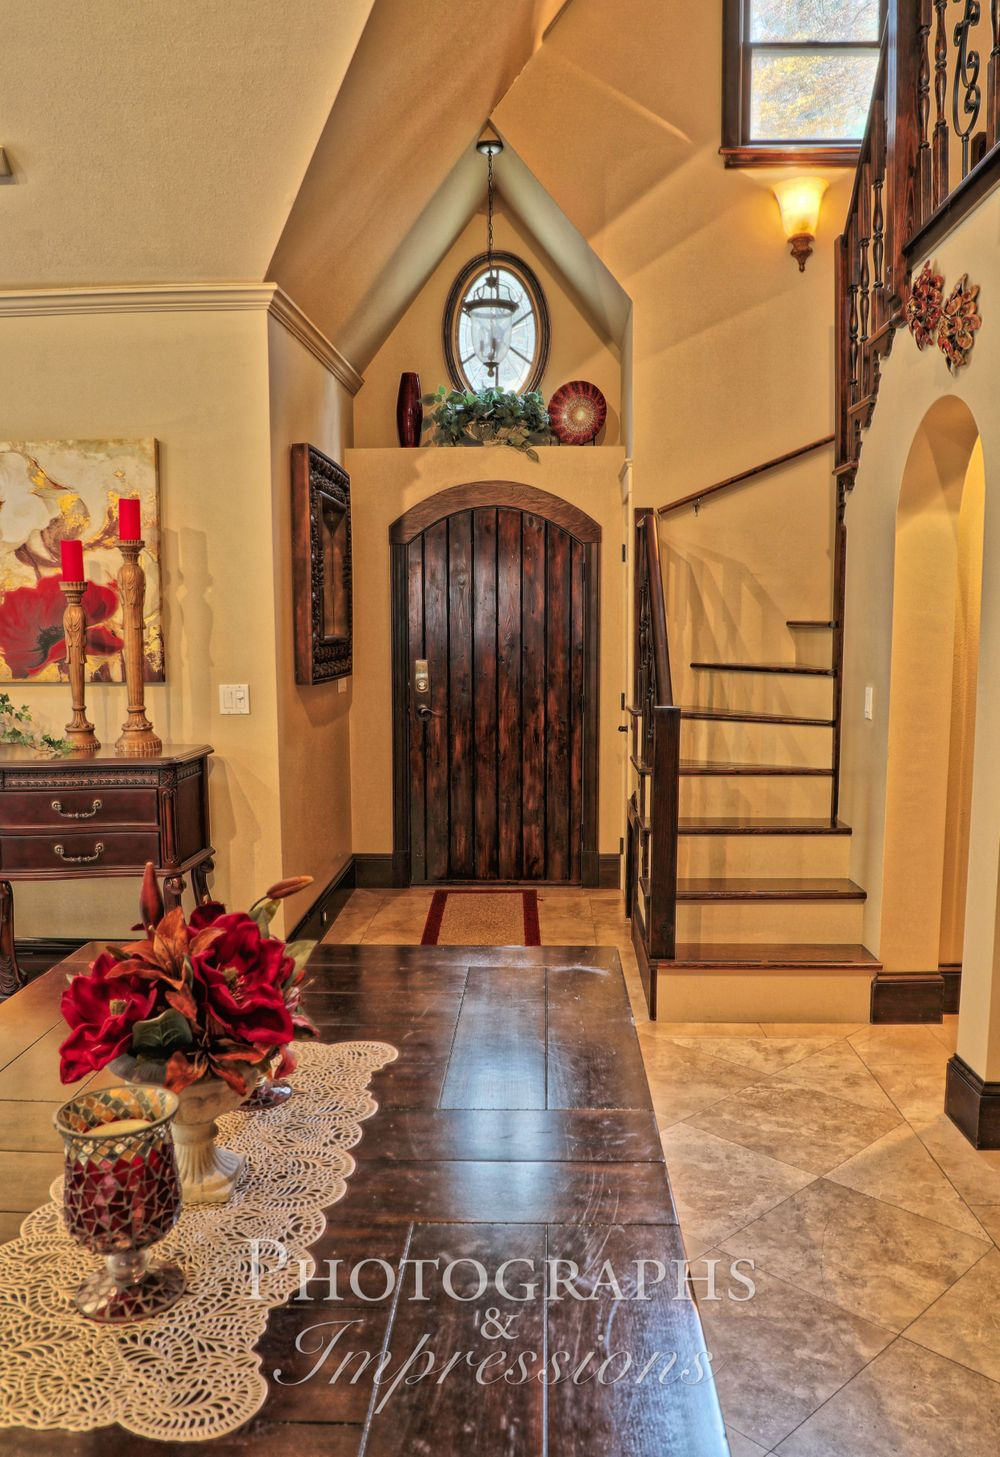 real estate photograph of entryway by Photographs and Impressions and Nunweiler Photography